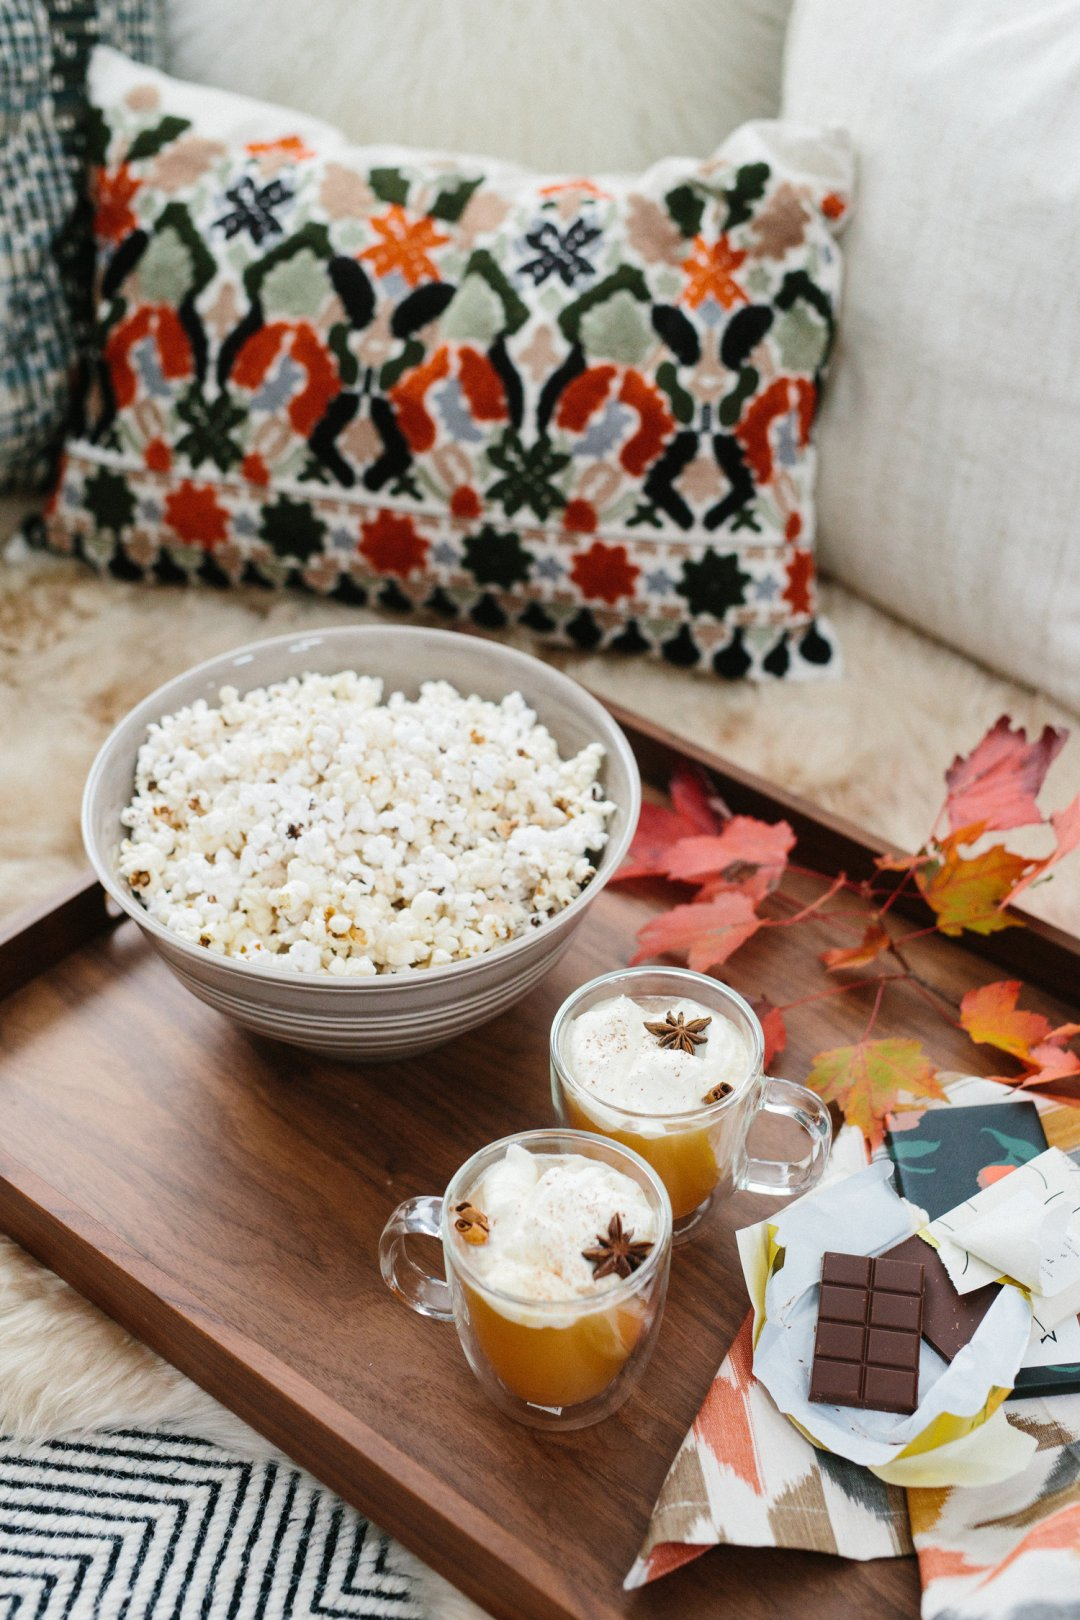 Popcorn, chocolate and orange cocktails on a wood serivng platter on a fur throw